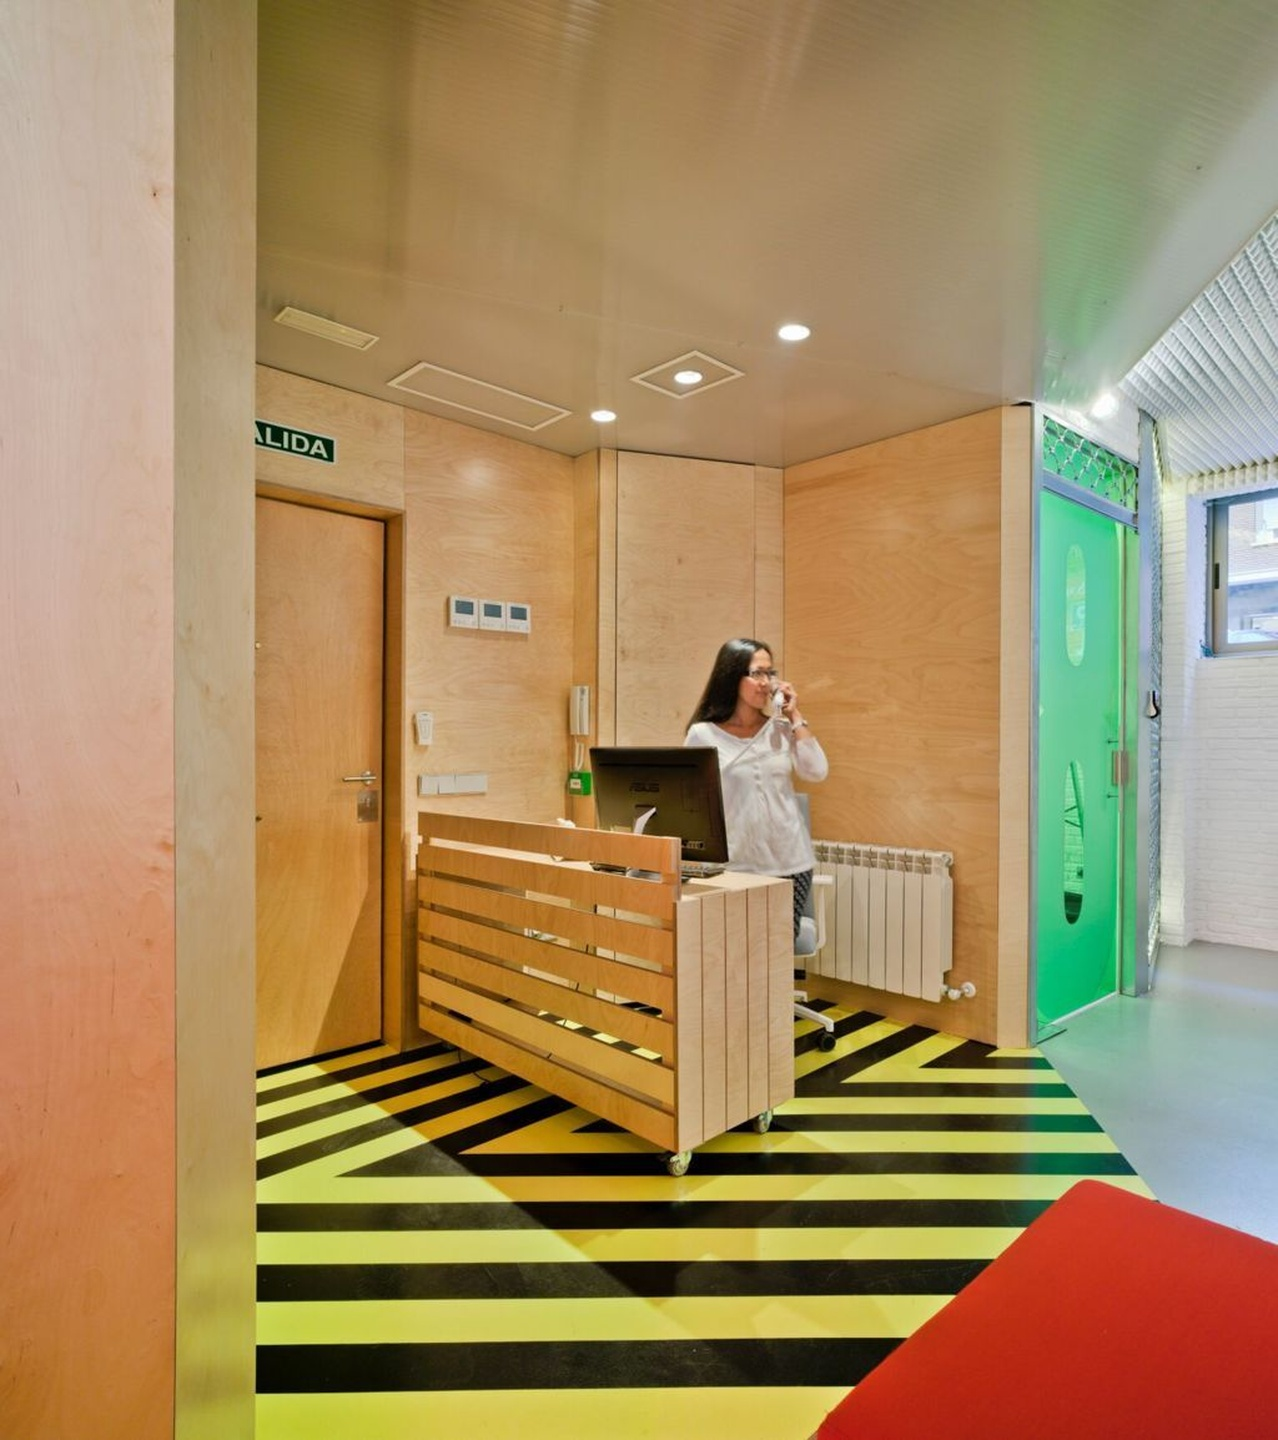 Madrid seminar rooms Coworking space The Underground Den S.L. image 2